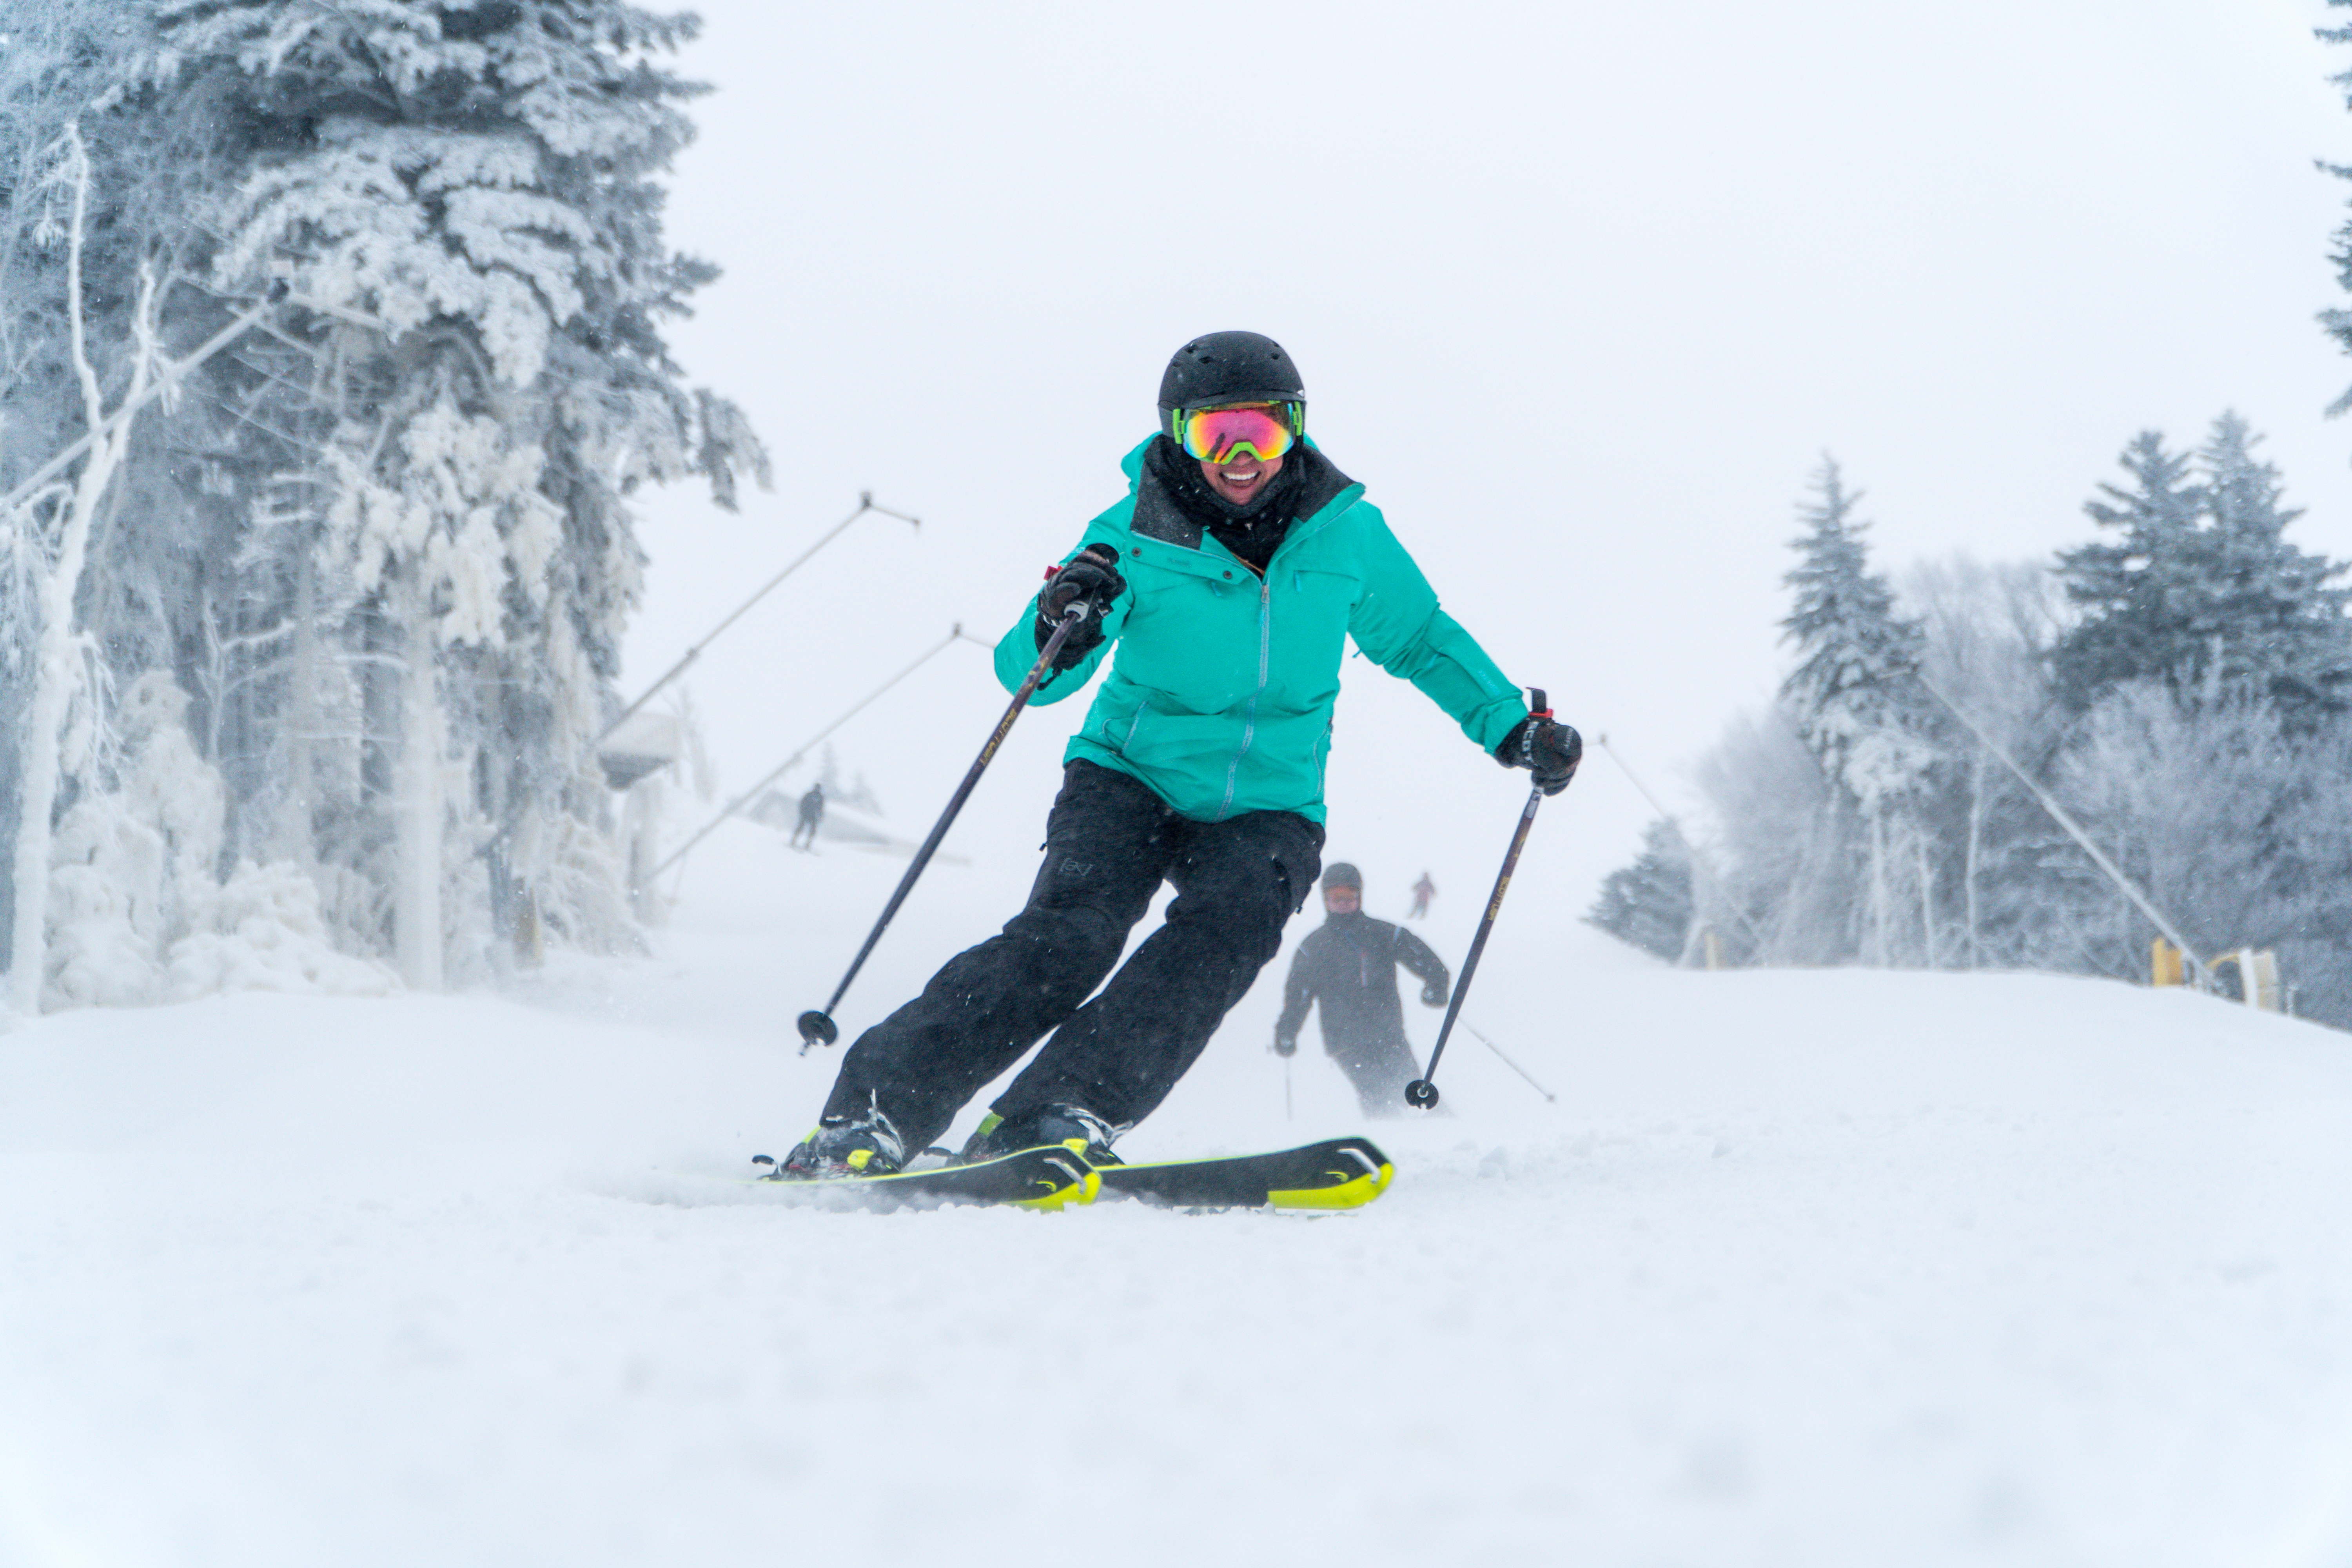 Plenty of resorts within 3 hours of D.C. offer skiing that feels world's away. (Image: Courtesy Snowshoe Mountain Resort)